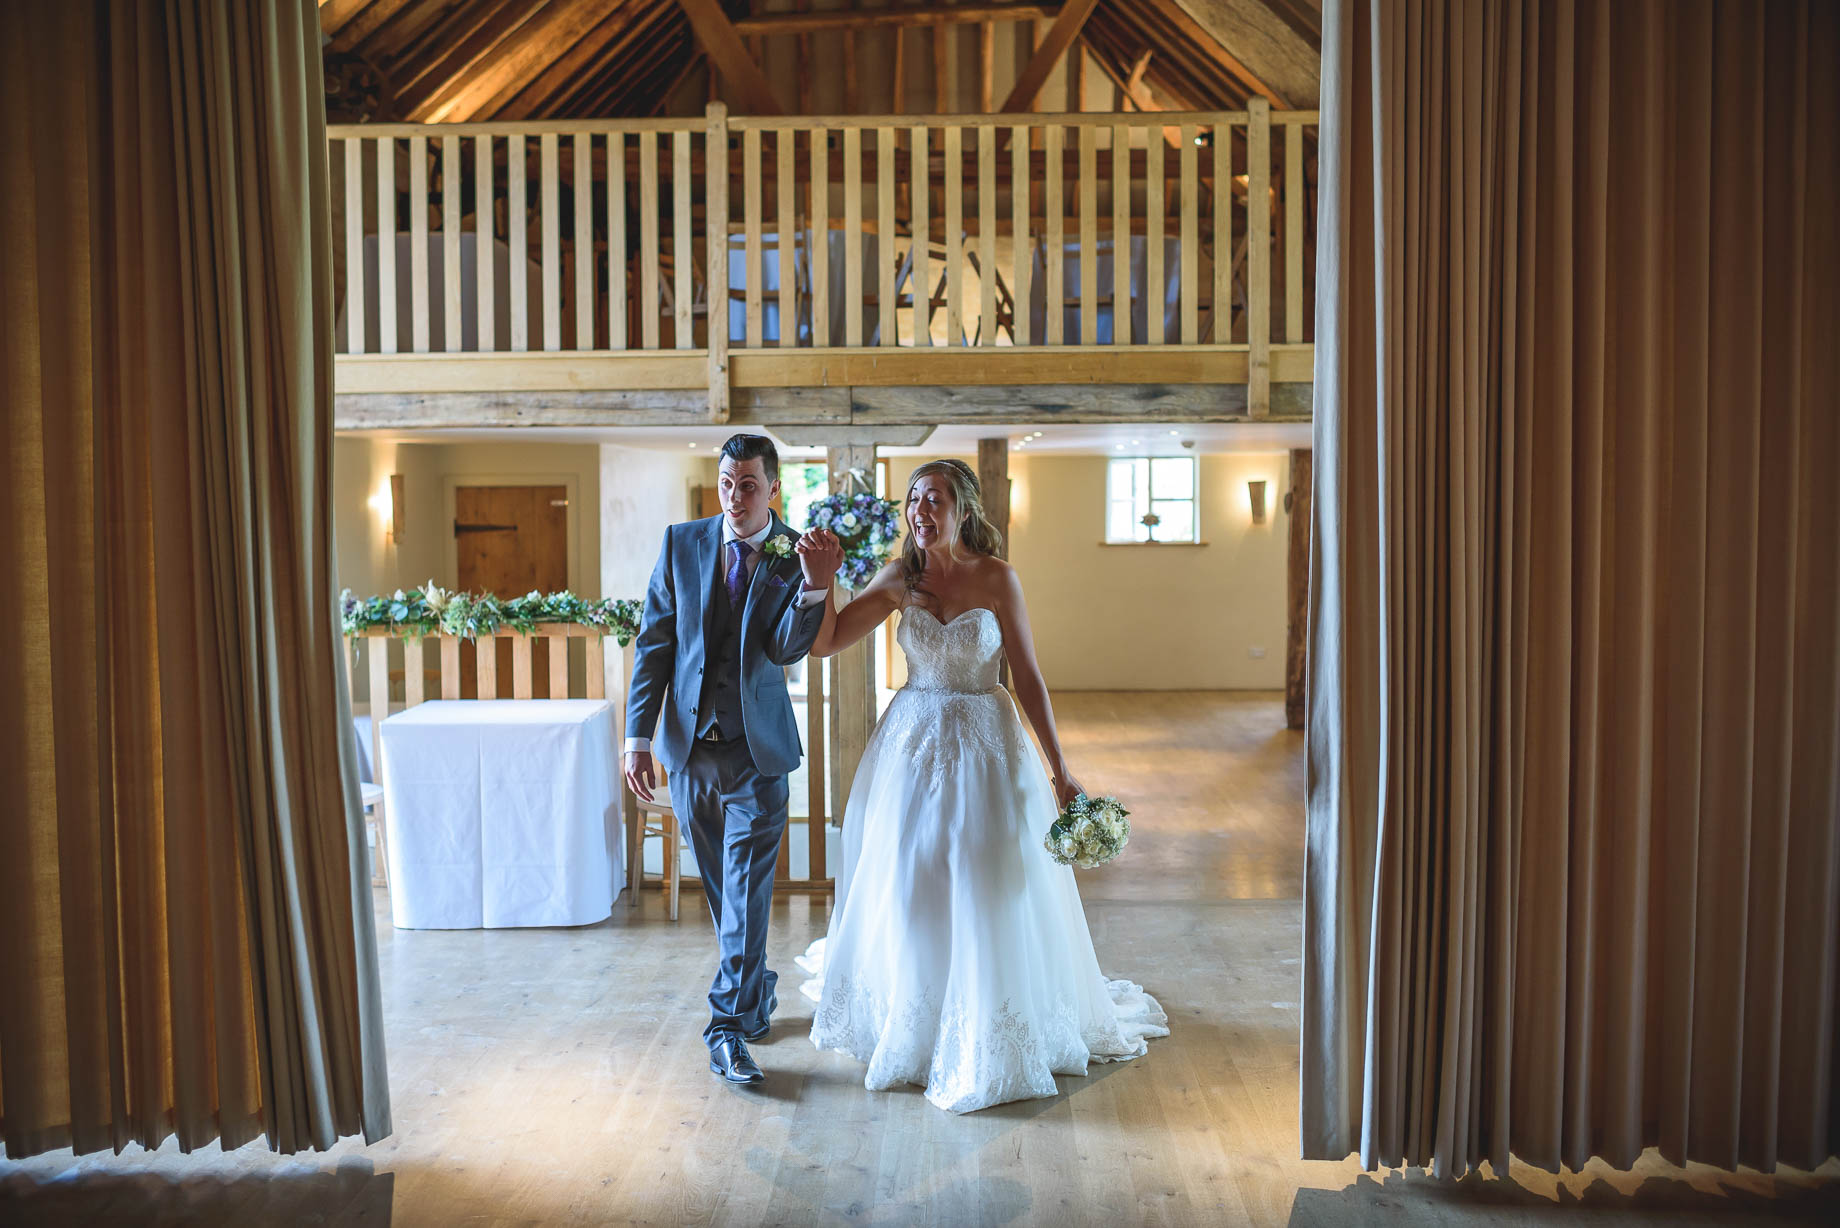 Bury Court Barn wedding photography - Guy Collier - Kirsty and Lewis (115 of 150)